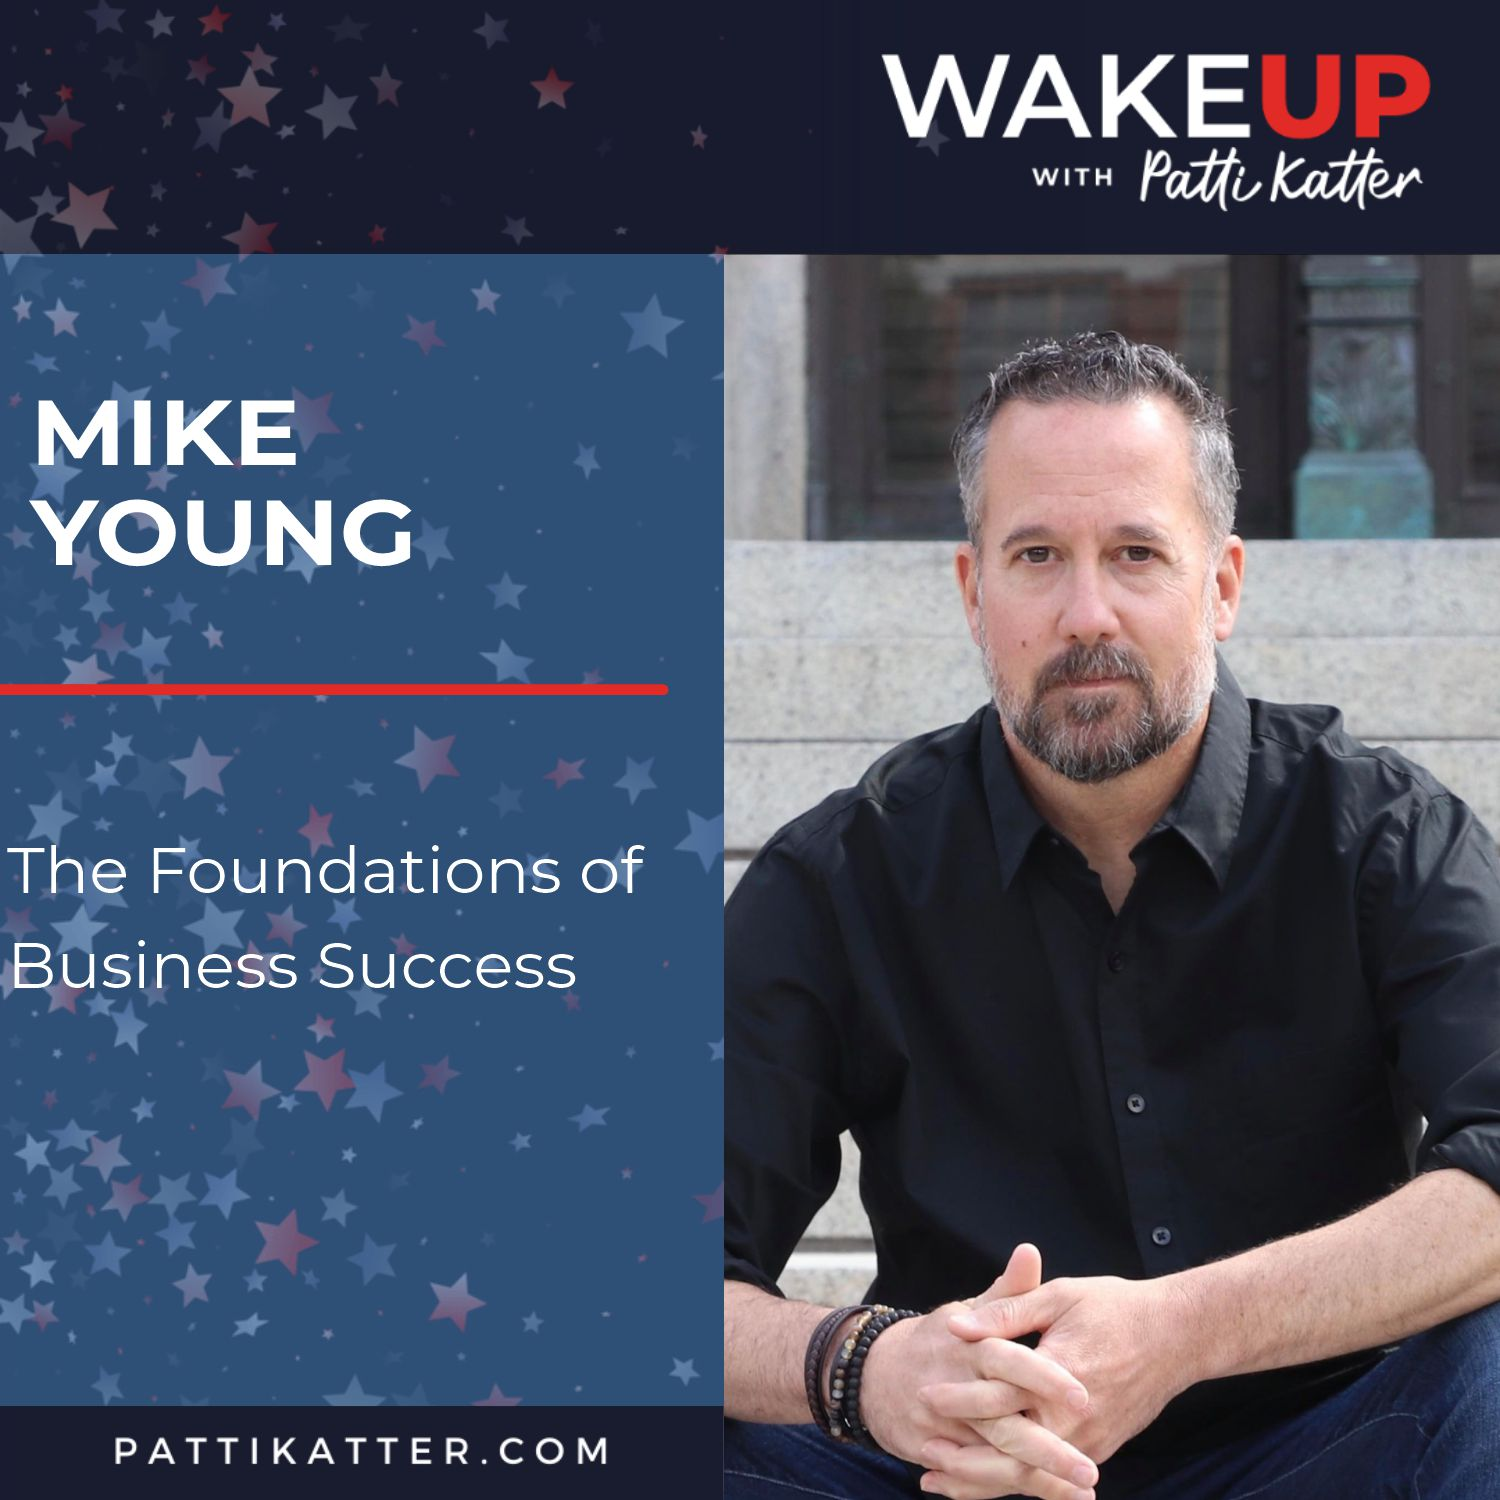 Mike Young: The Foundations of Business Success